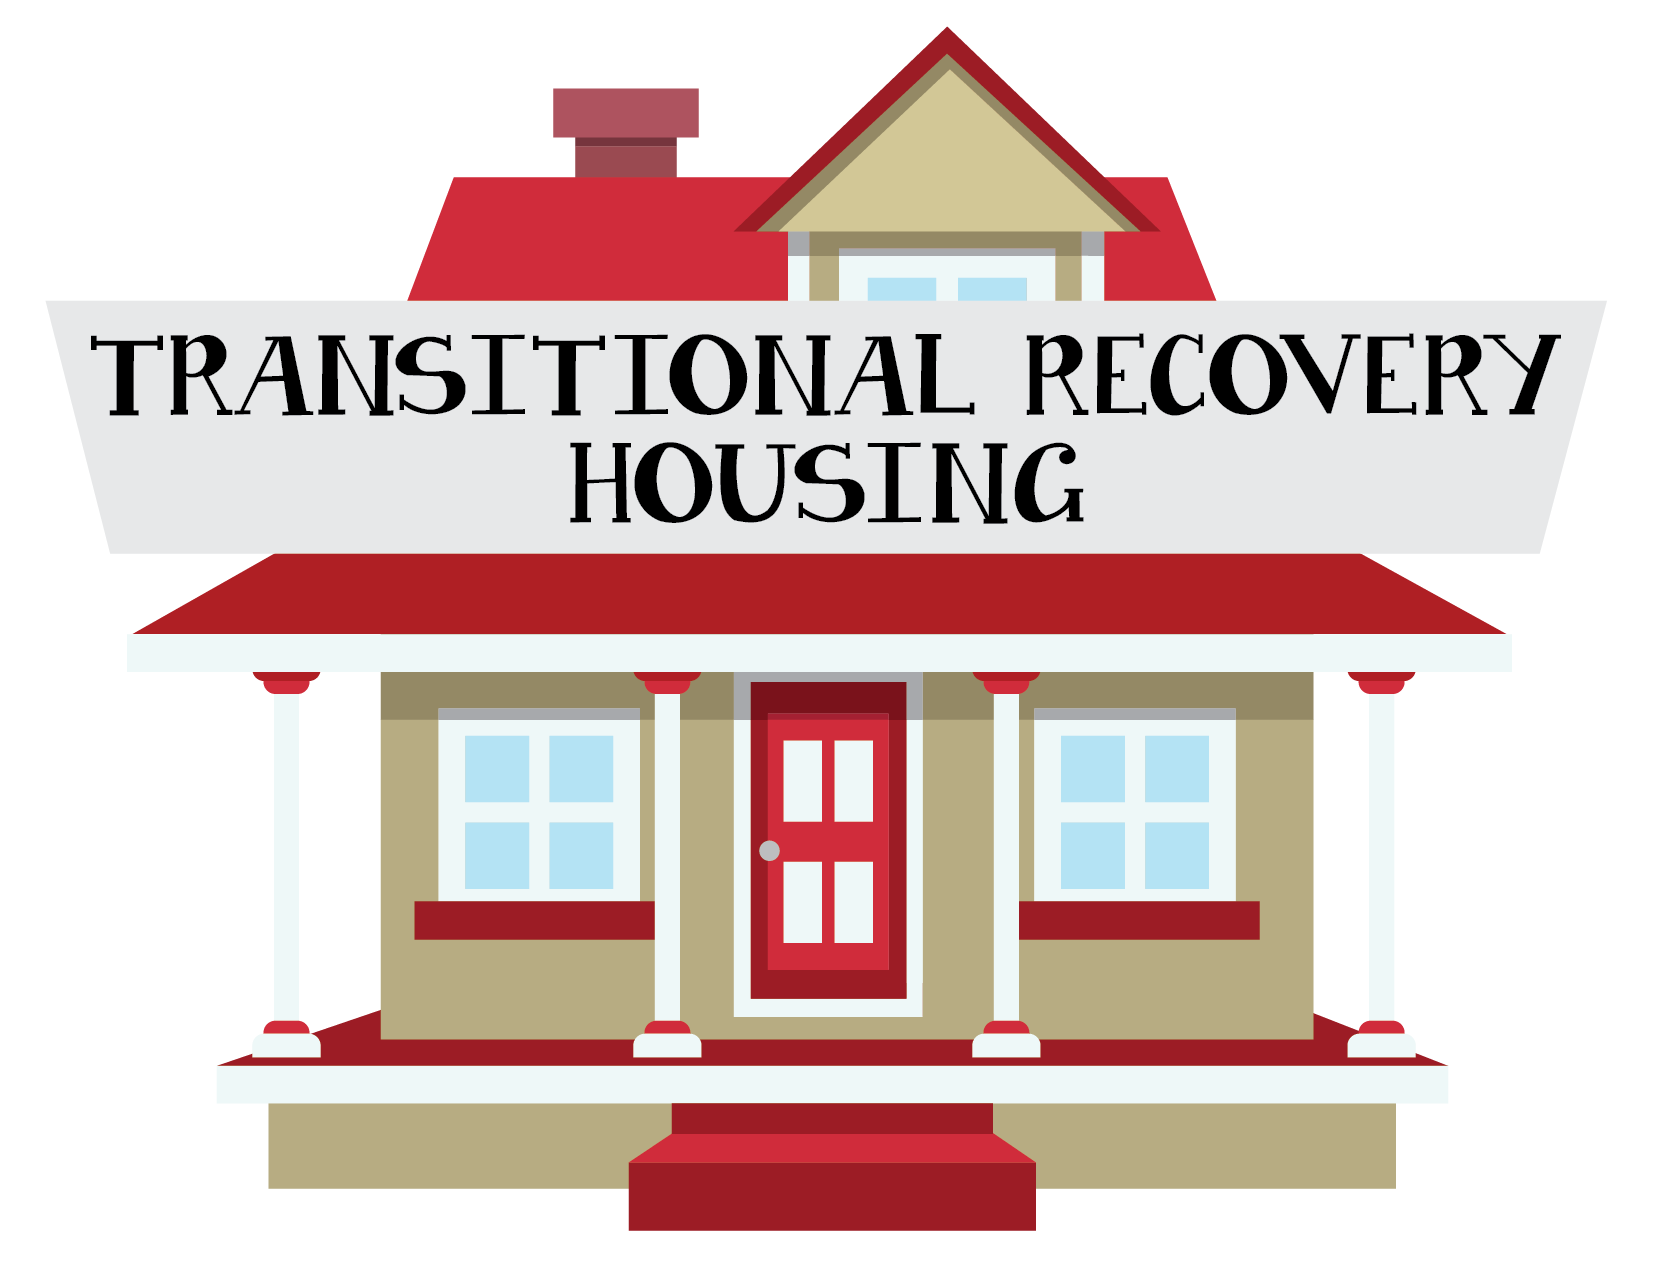 Hand clipart house. Transitional recovery housing lend